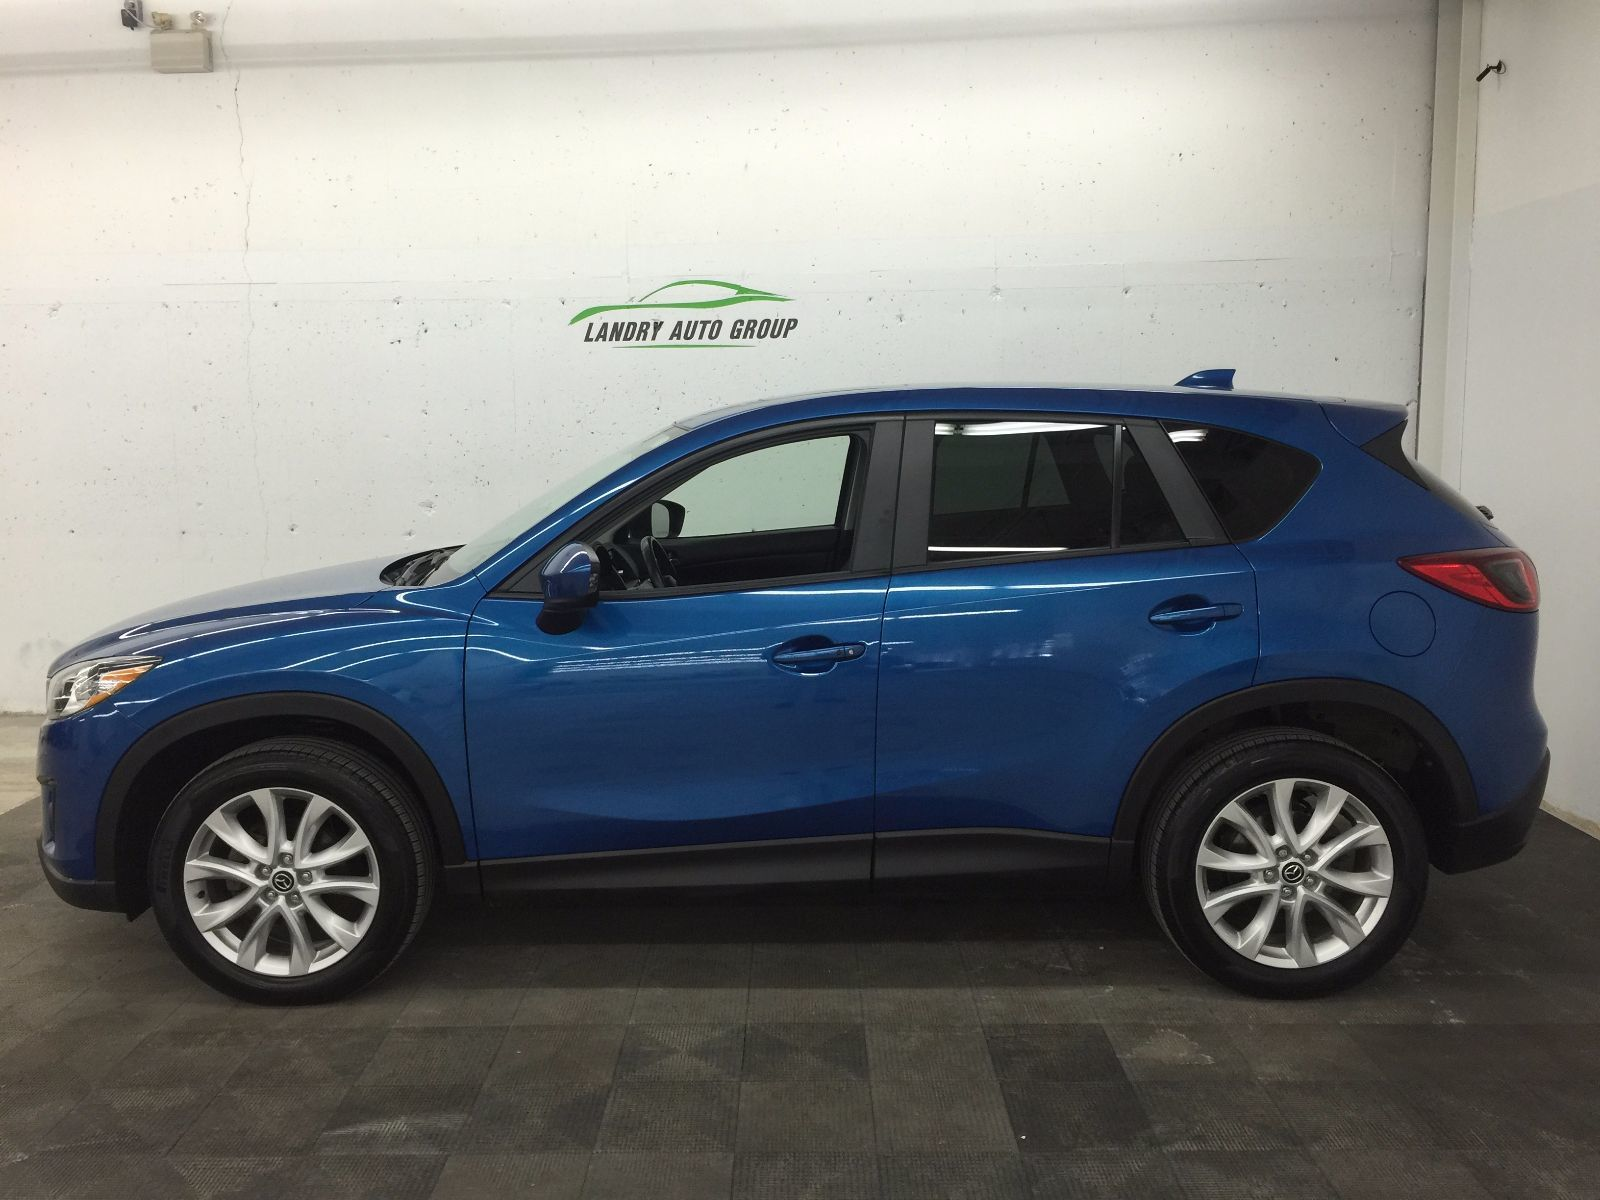 used 2013 mazda cx 5 gt in kentville used inventory kentville mazda in kentville nova scotia. Black Bedroom Furniture Sets. Home Design Ideas